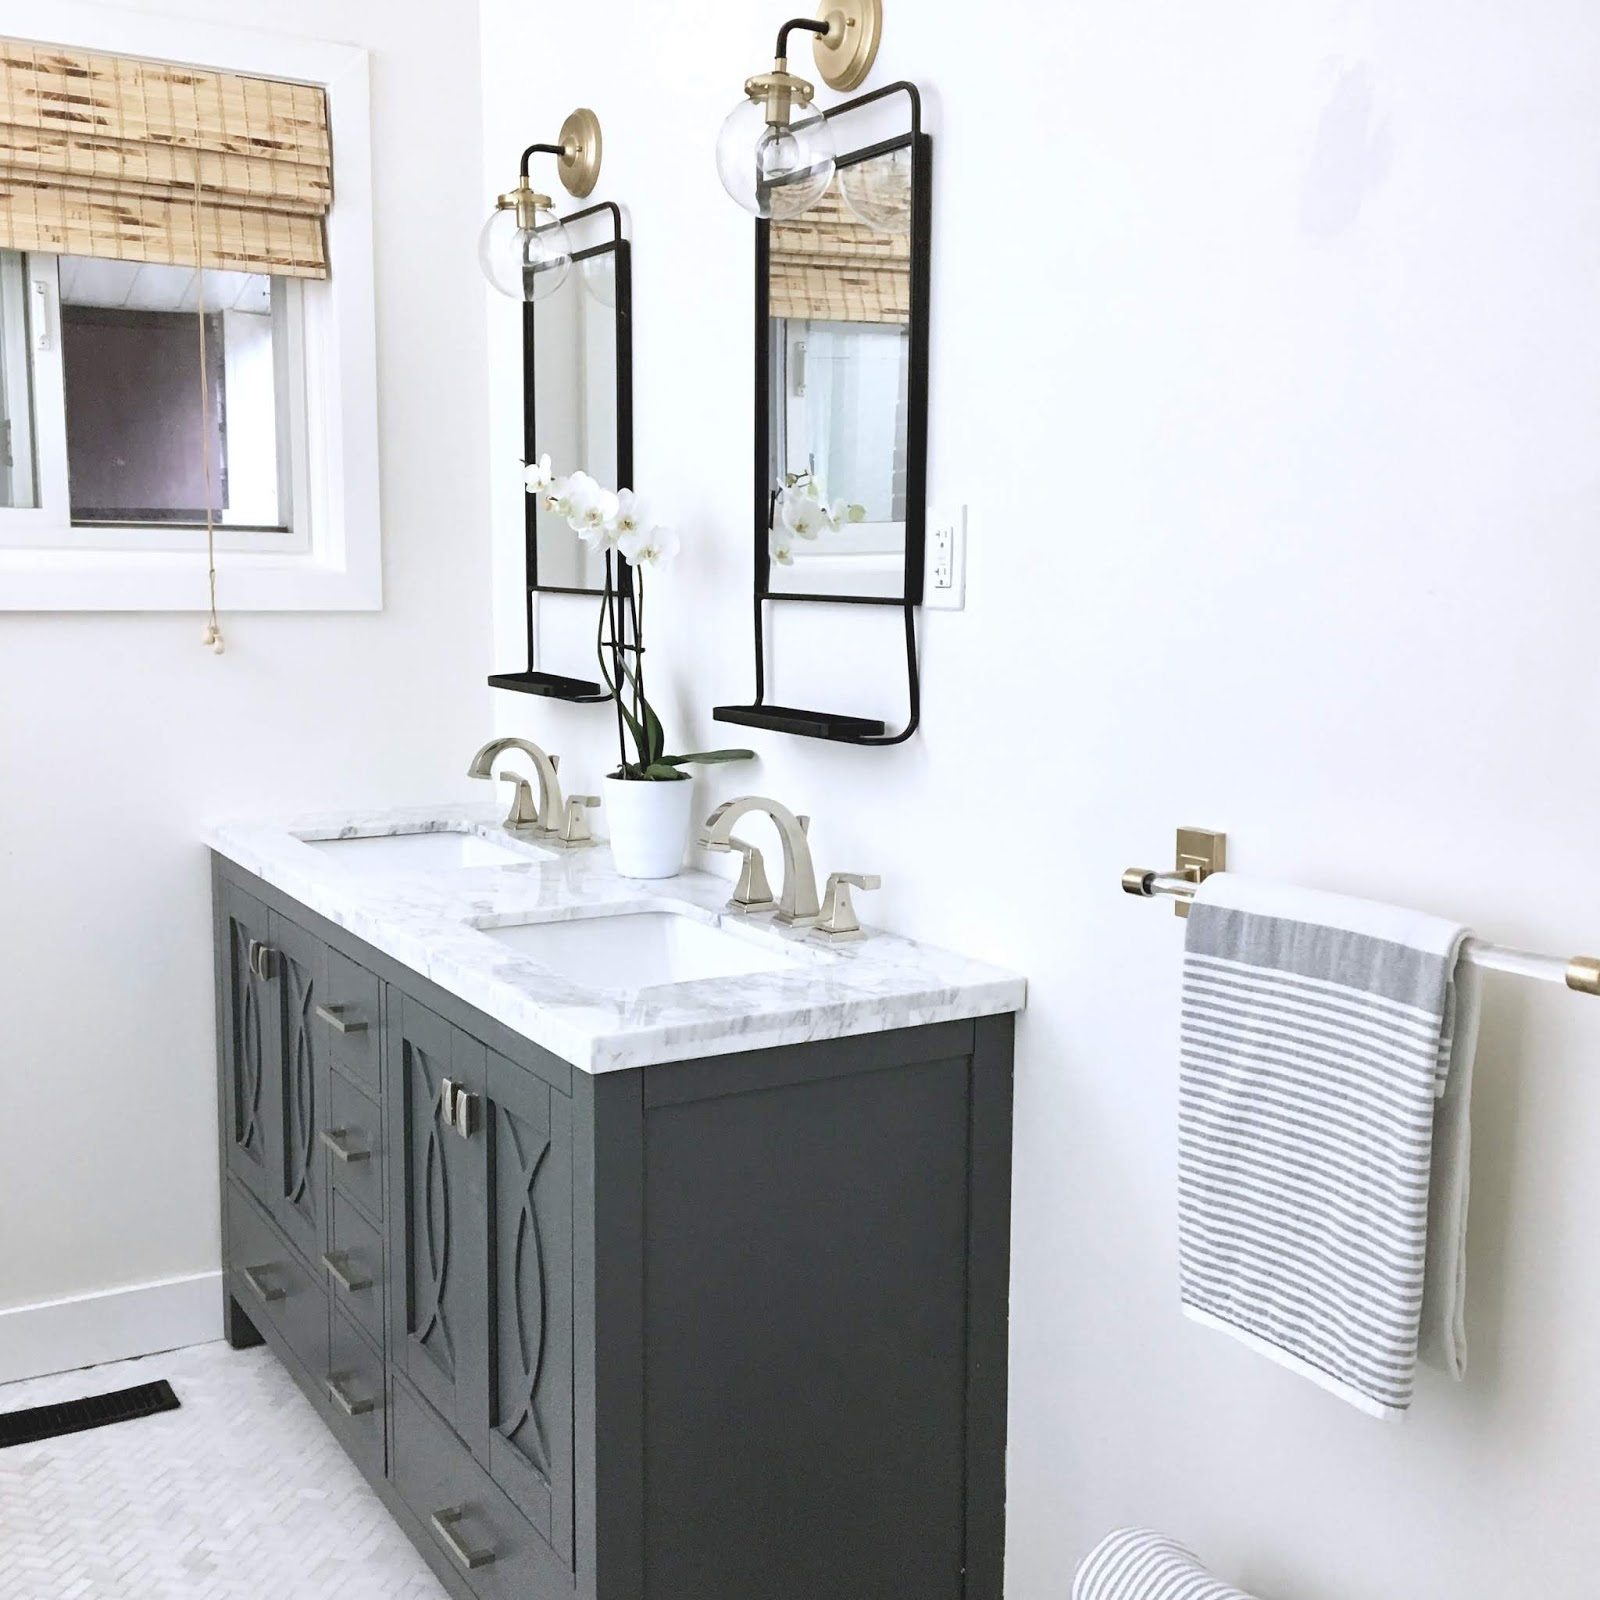 Win Bathroom Makeover: Small Bathroom Makeover